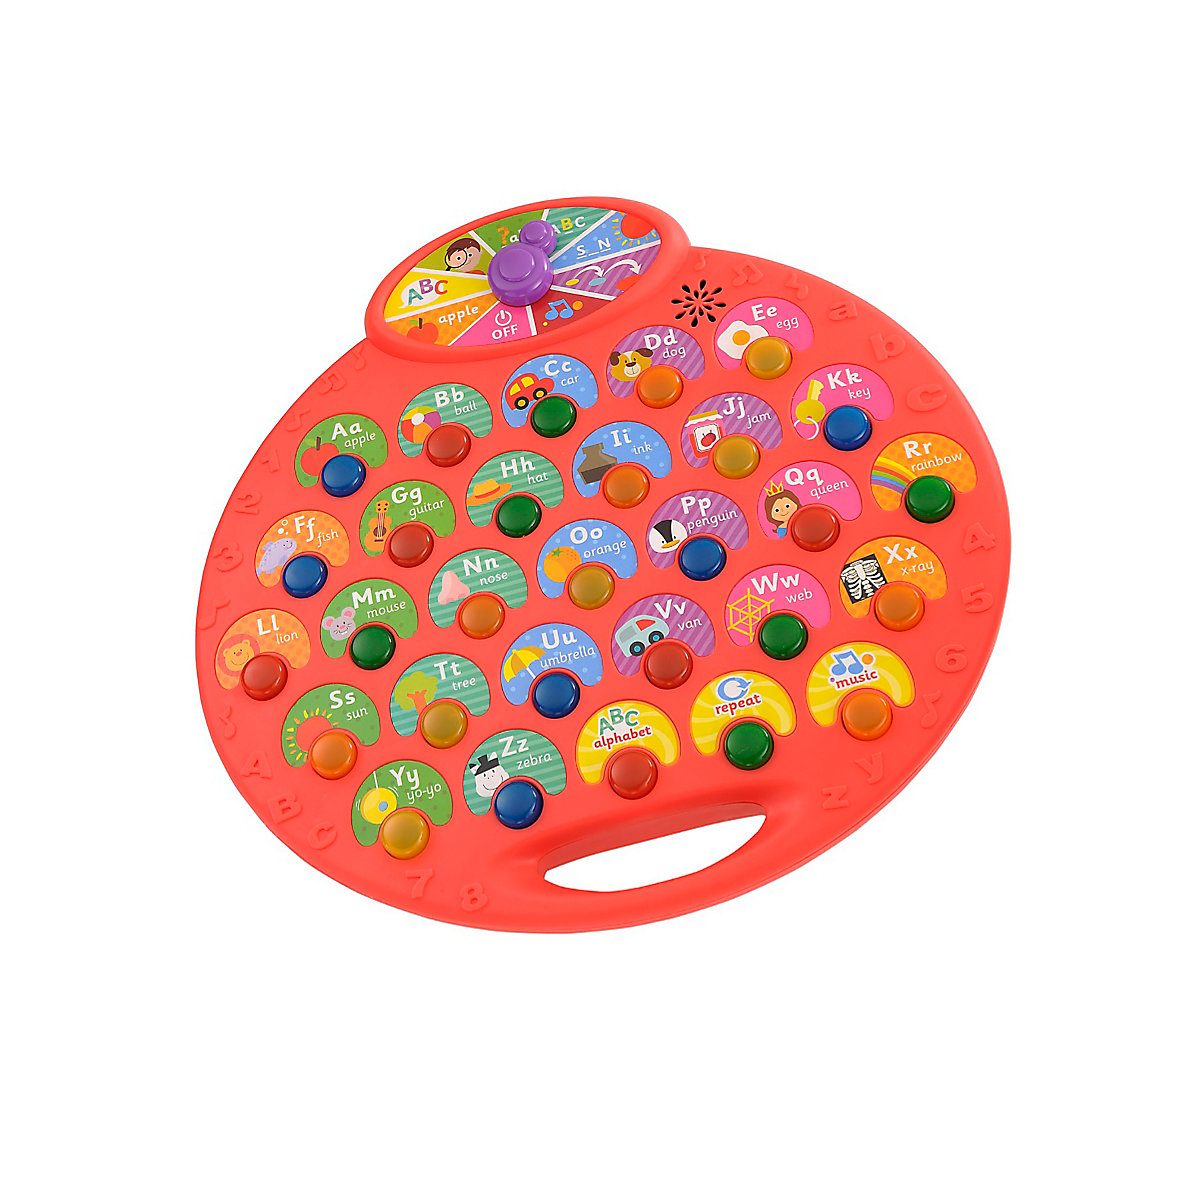 Lights and Sounds Phonics Desk Toy From 3 years